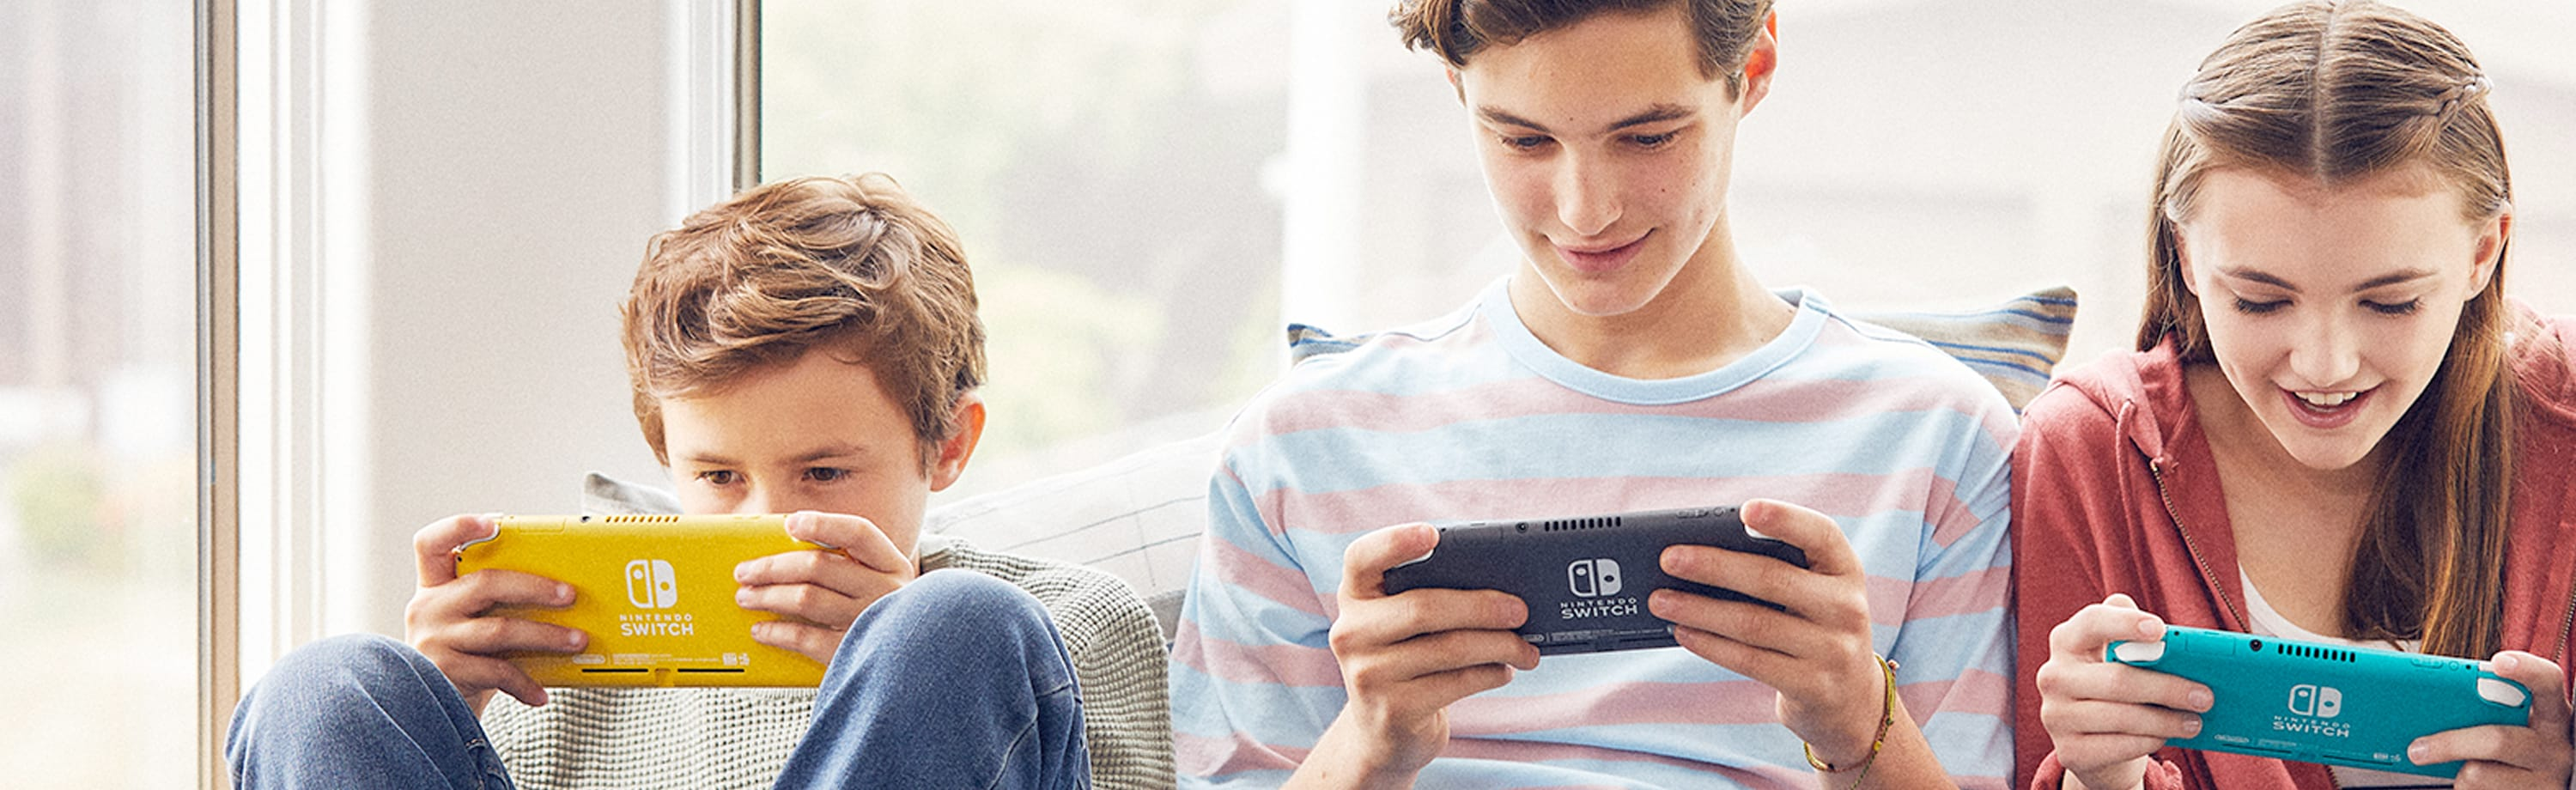 Family playing the Switch together